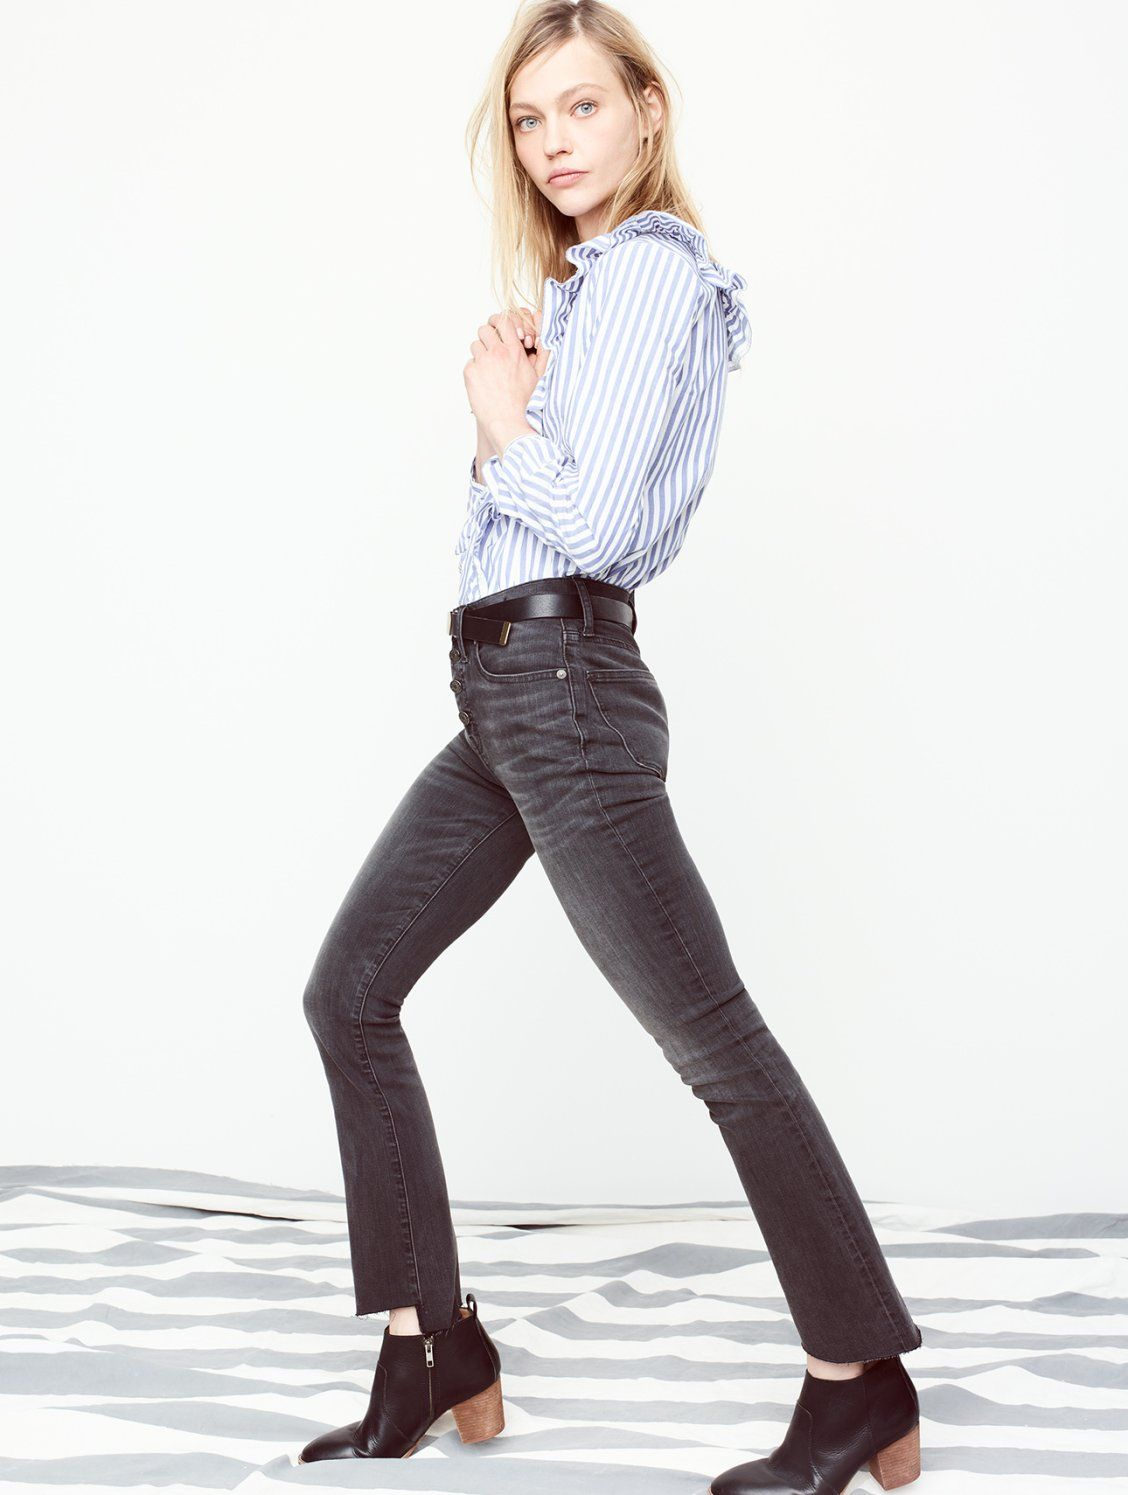 05656089e3a madewell cali demi-boot jeans  asymmetrical hem edition worn with the  striped ruffle-front blouse + brenner boot.